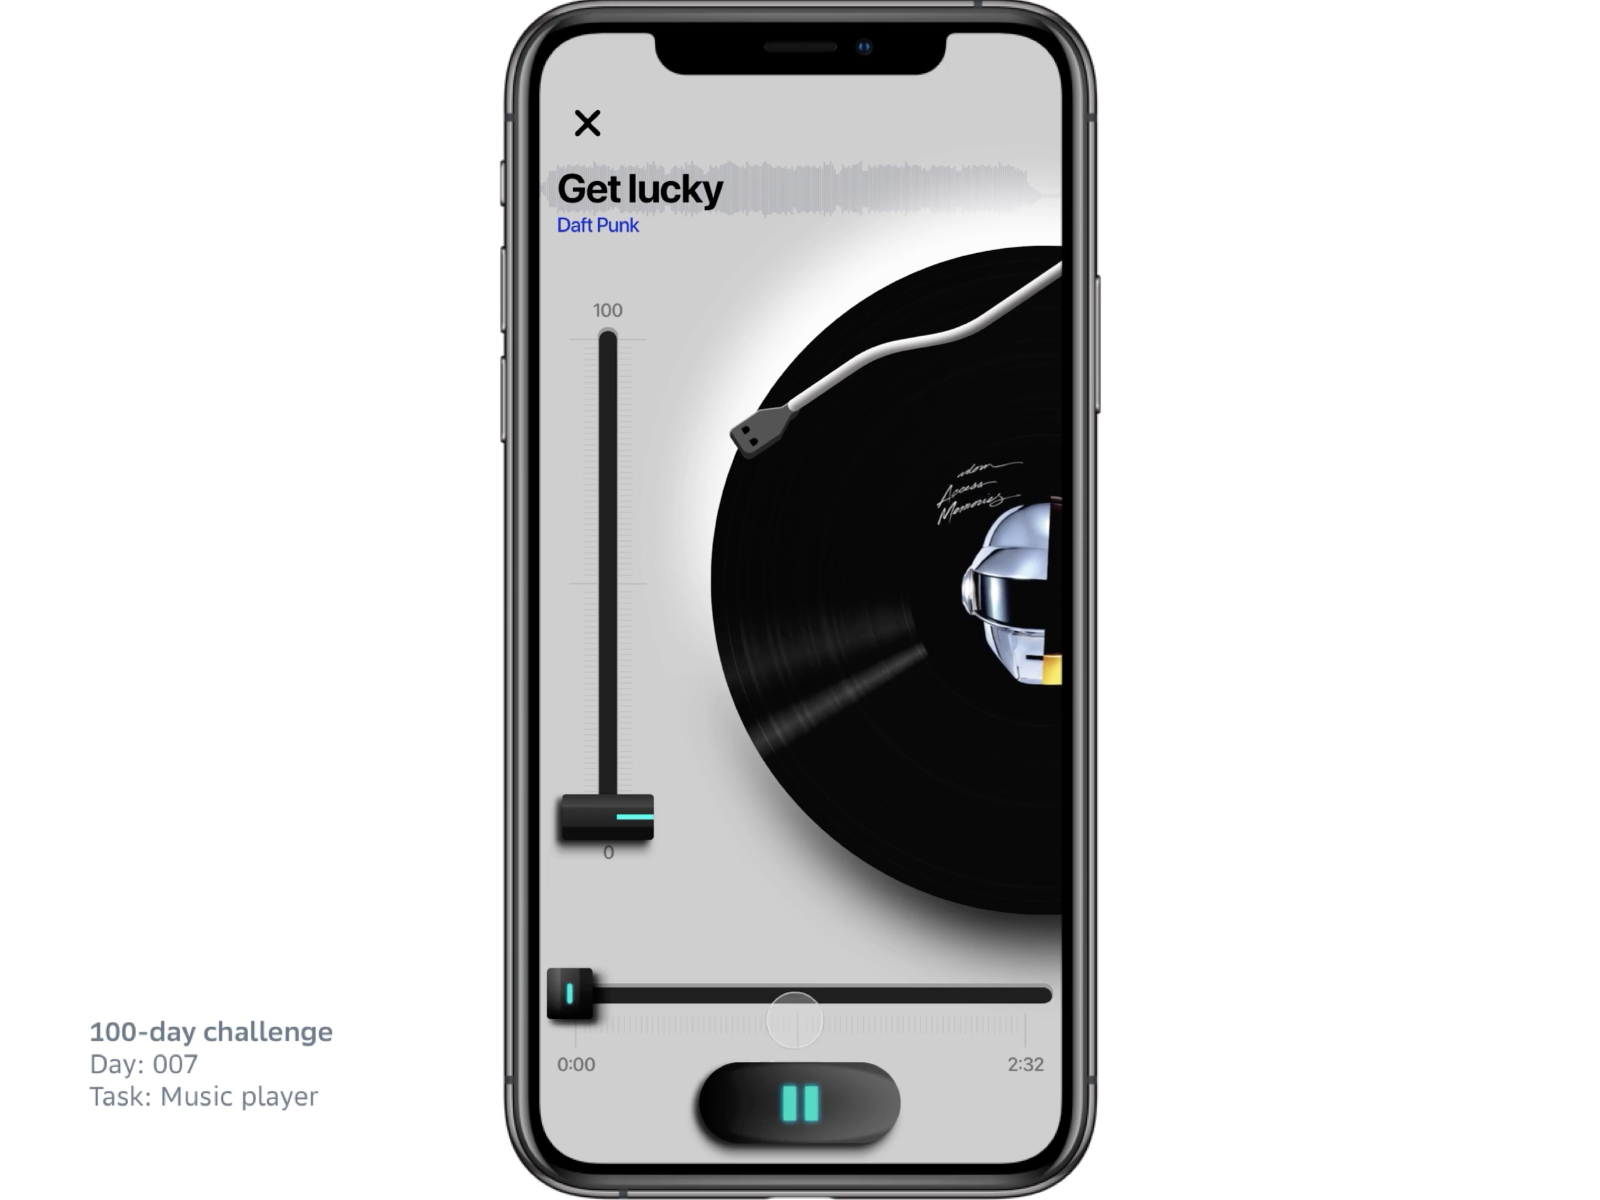 007 - Music player cover image